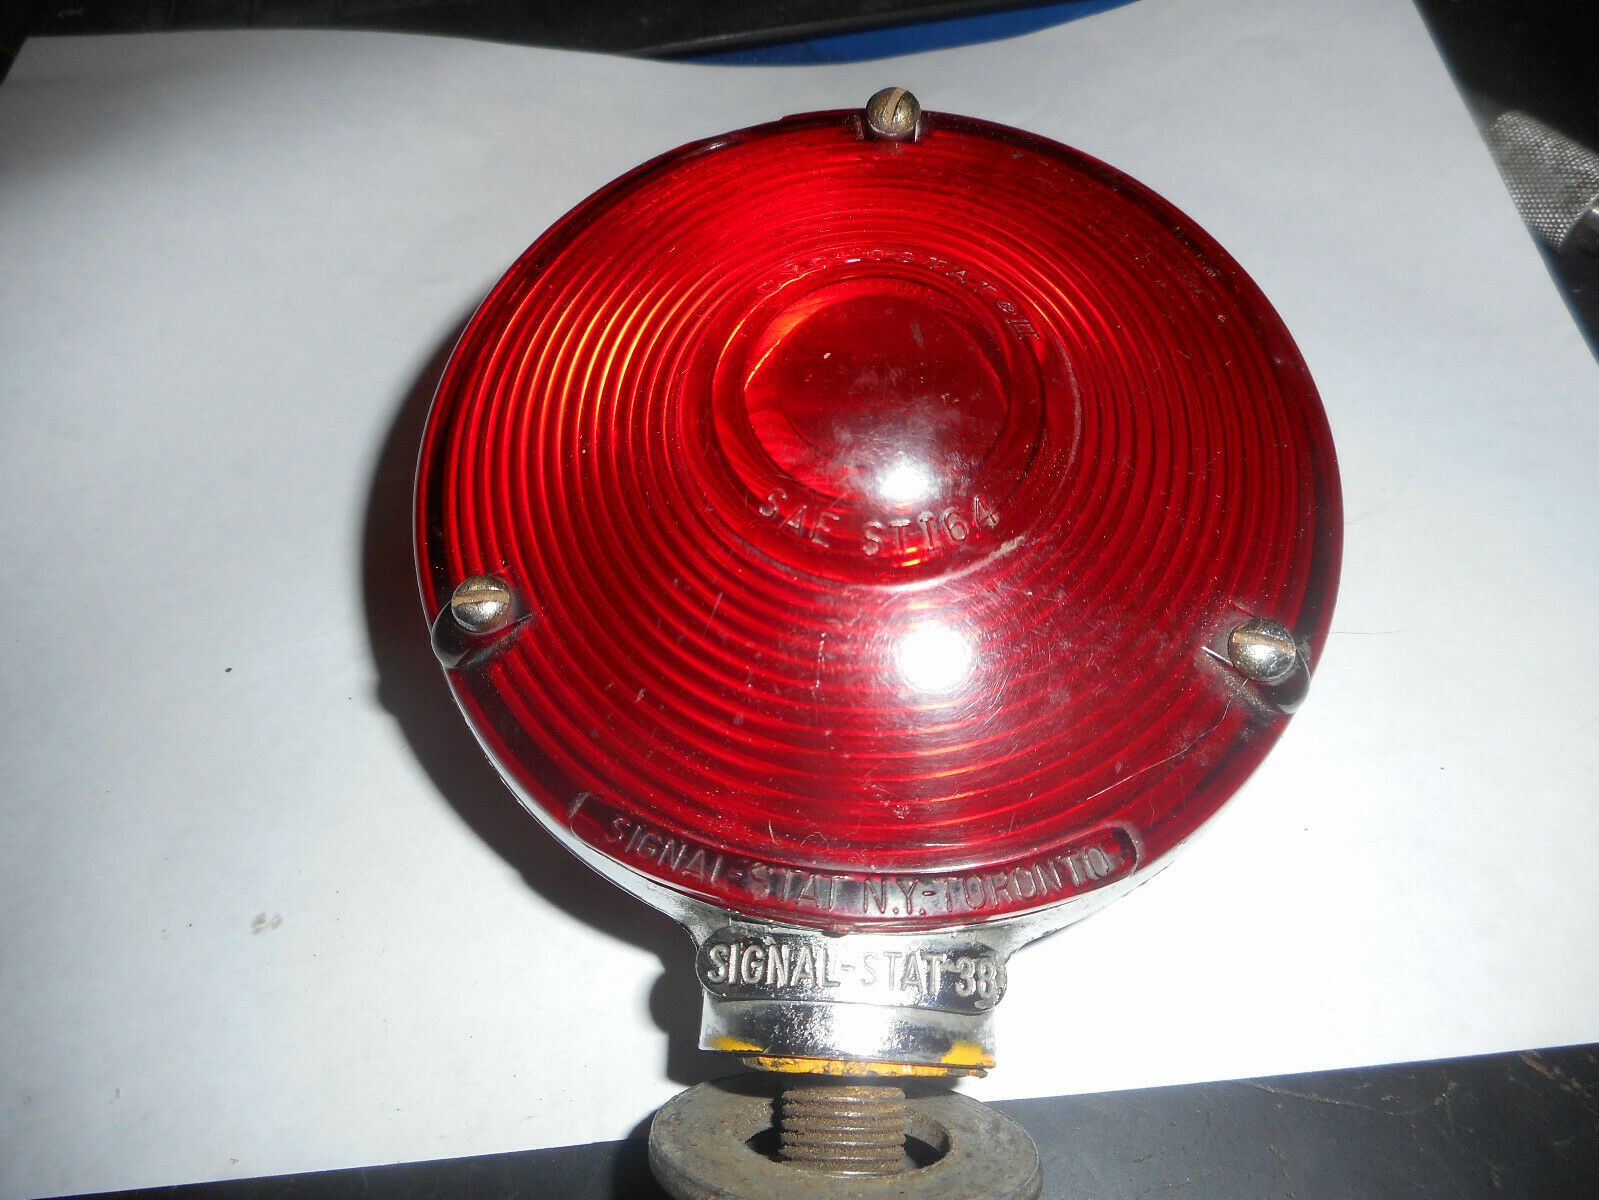 VINTAGE SIGNAL-STAT 38 SAE-STI64, RED AMBER TESTED, WORKS!